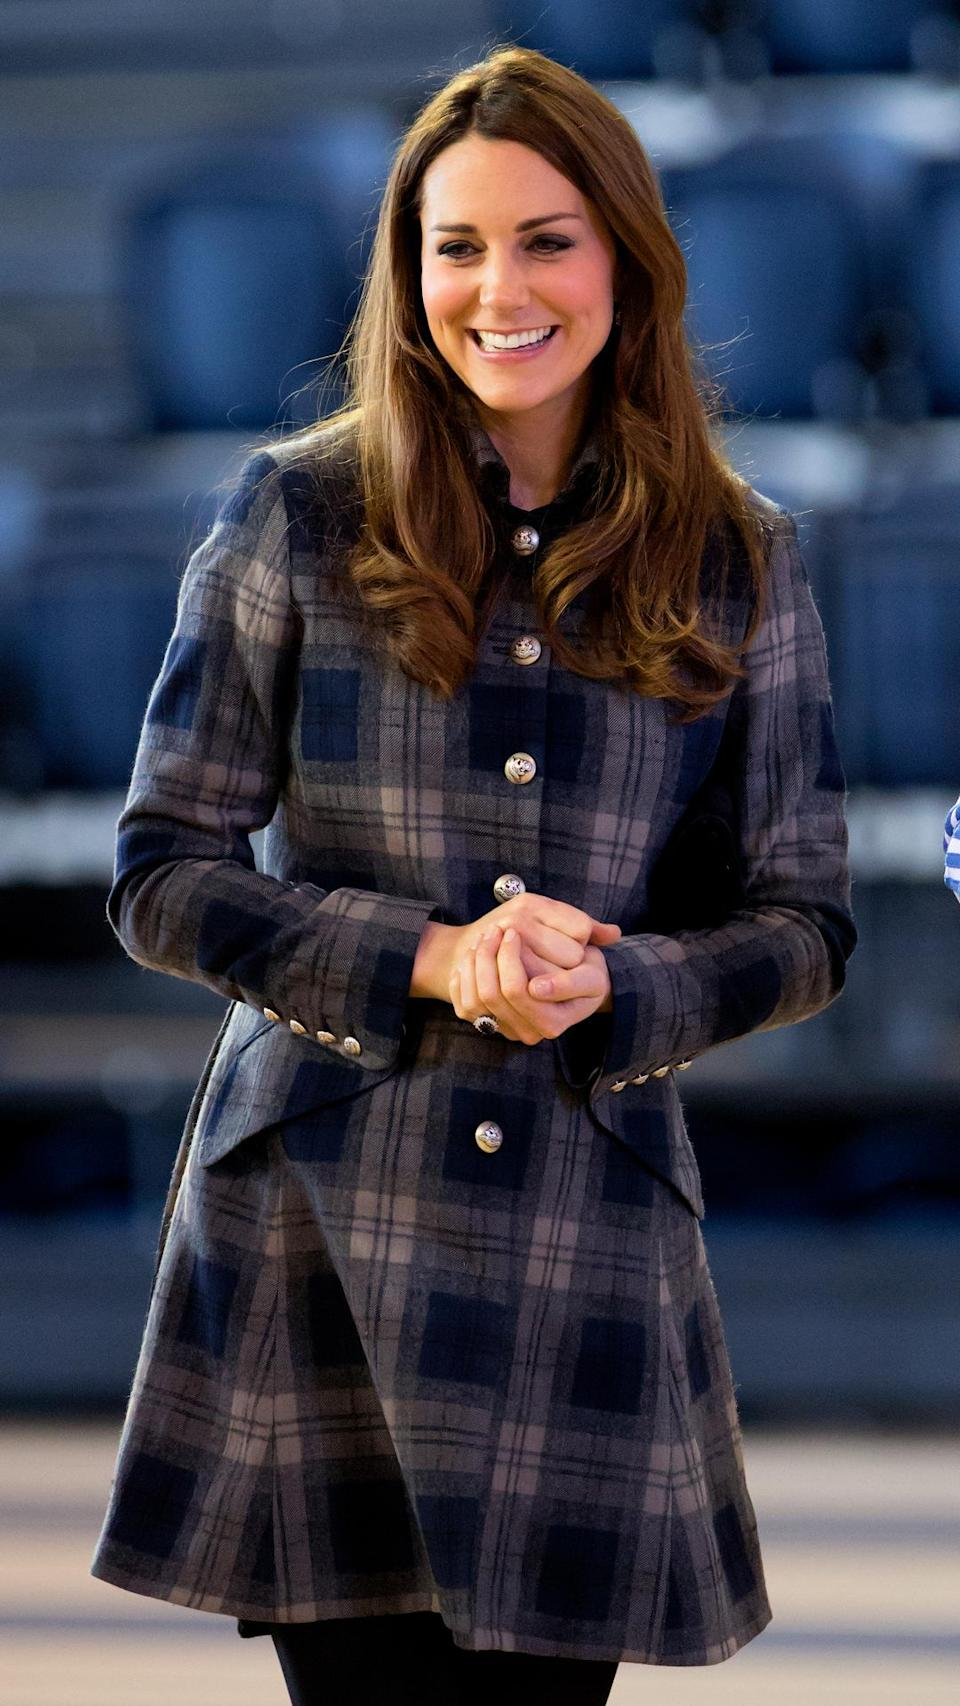 <p>For a visit to Glasgow, Scotland in 2013, Kate dressed appropriately in the Scot-friendly pattern.</p>